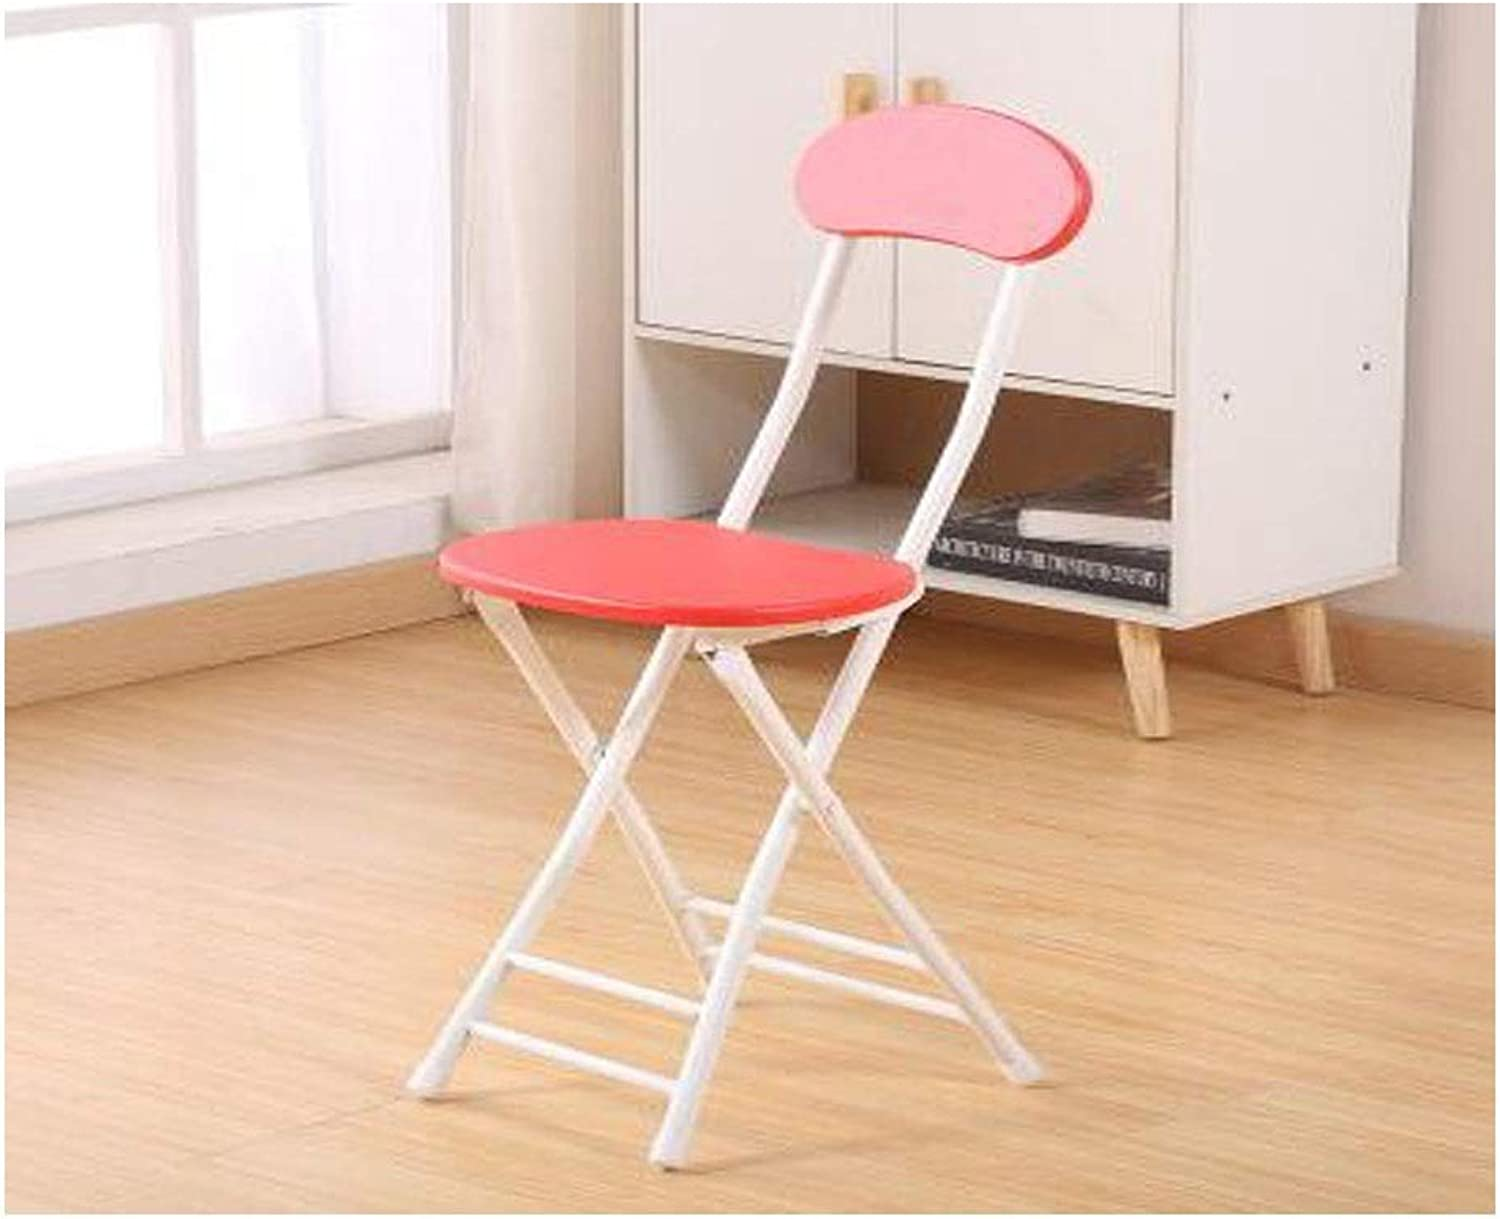 Kaiyitong Folding Chair, Portable Fashion Chair, Simple Computer Chair, Suitable for Home, Restaurant, Office Training, Multi-color Optional Durable